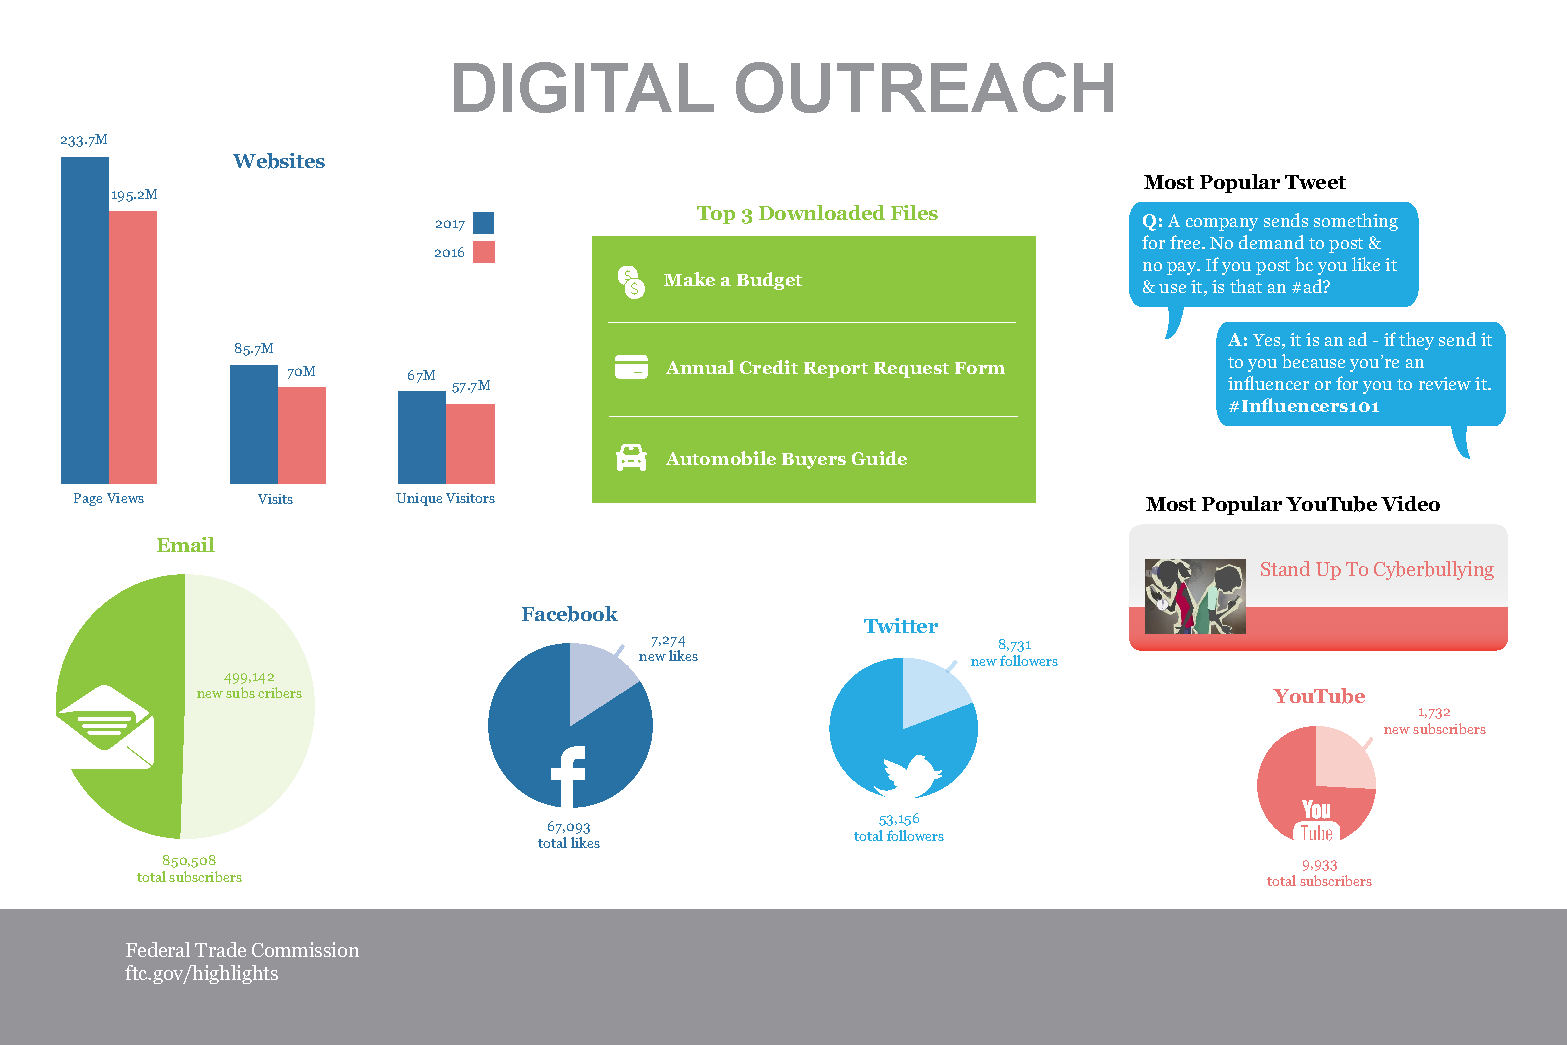 Stats & Data 2017 Digital Outreach infographic